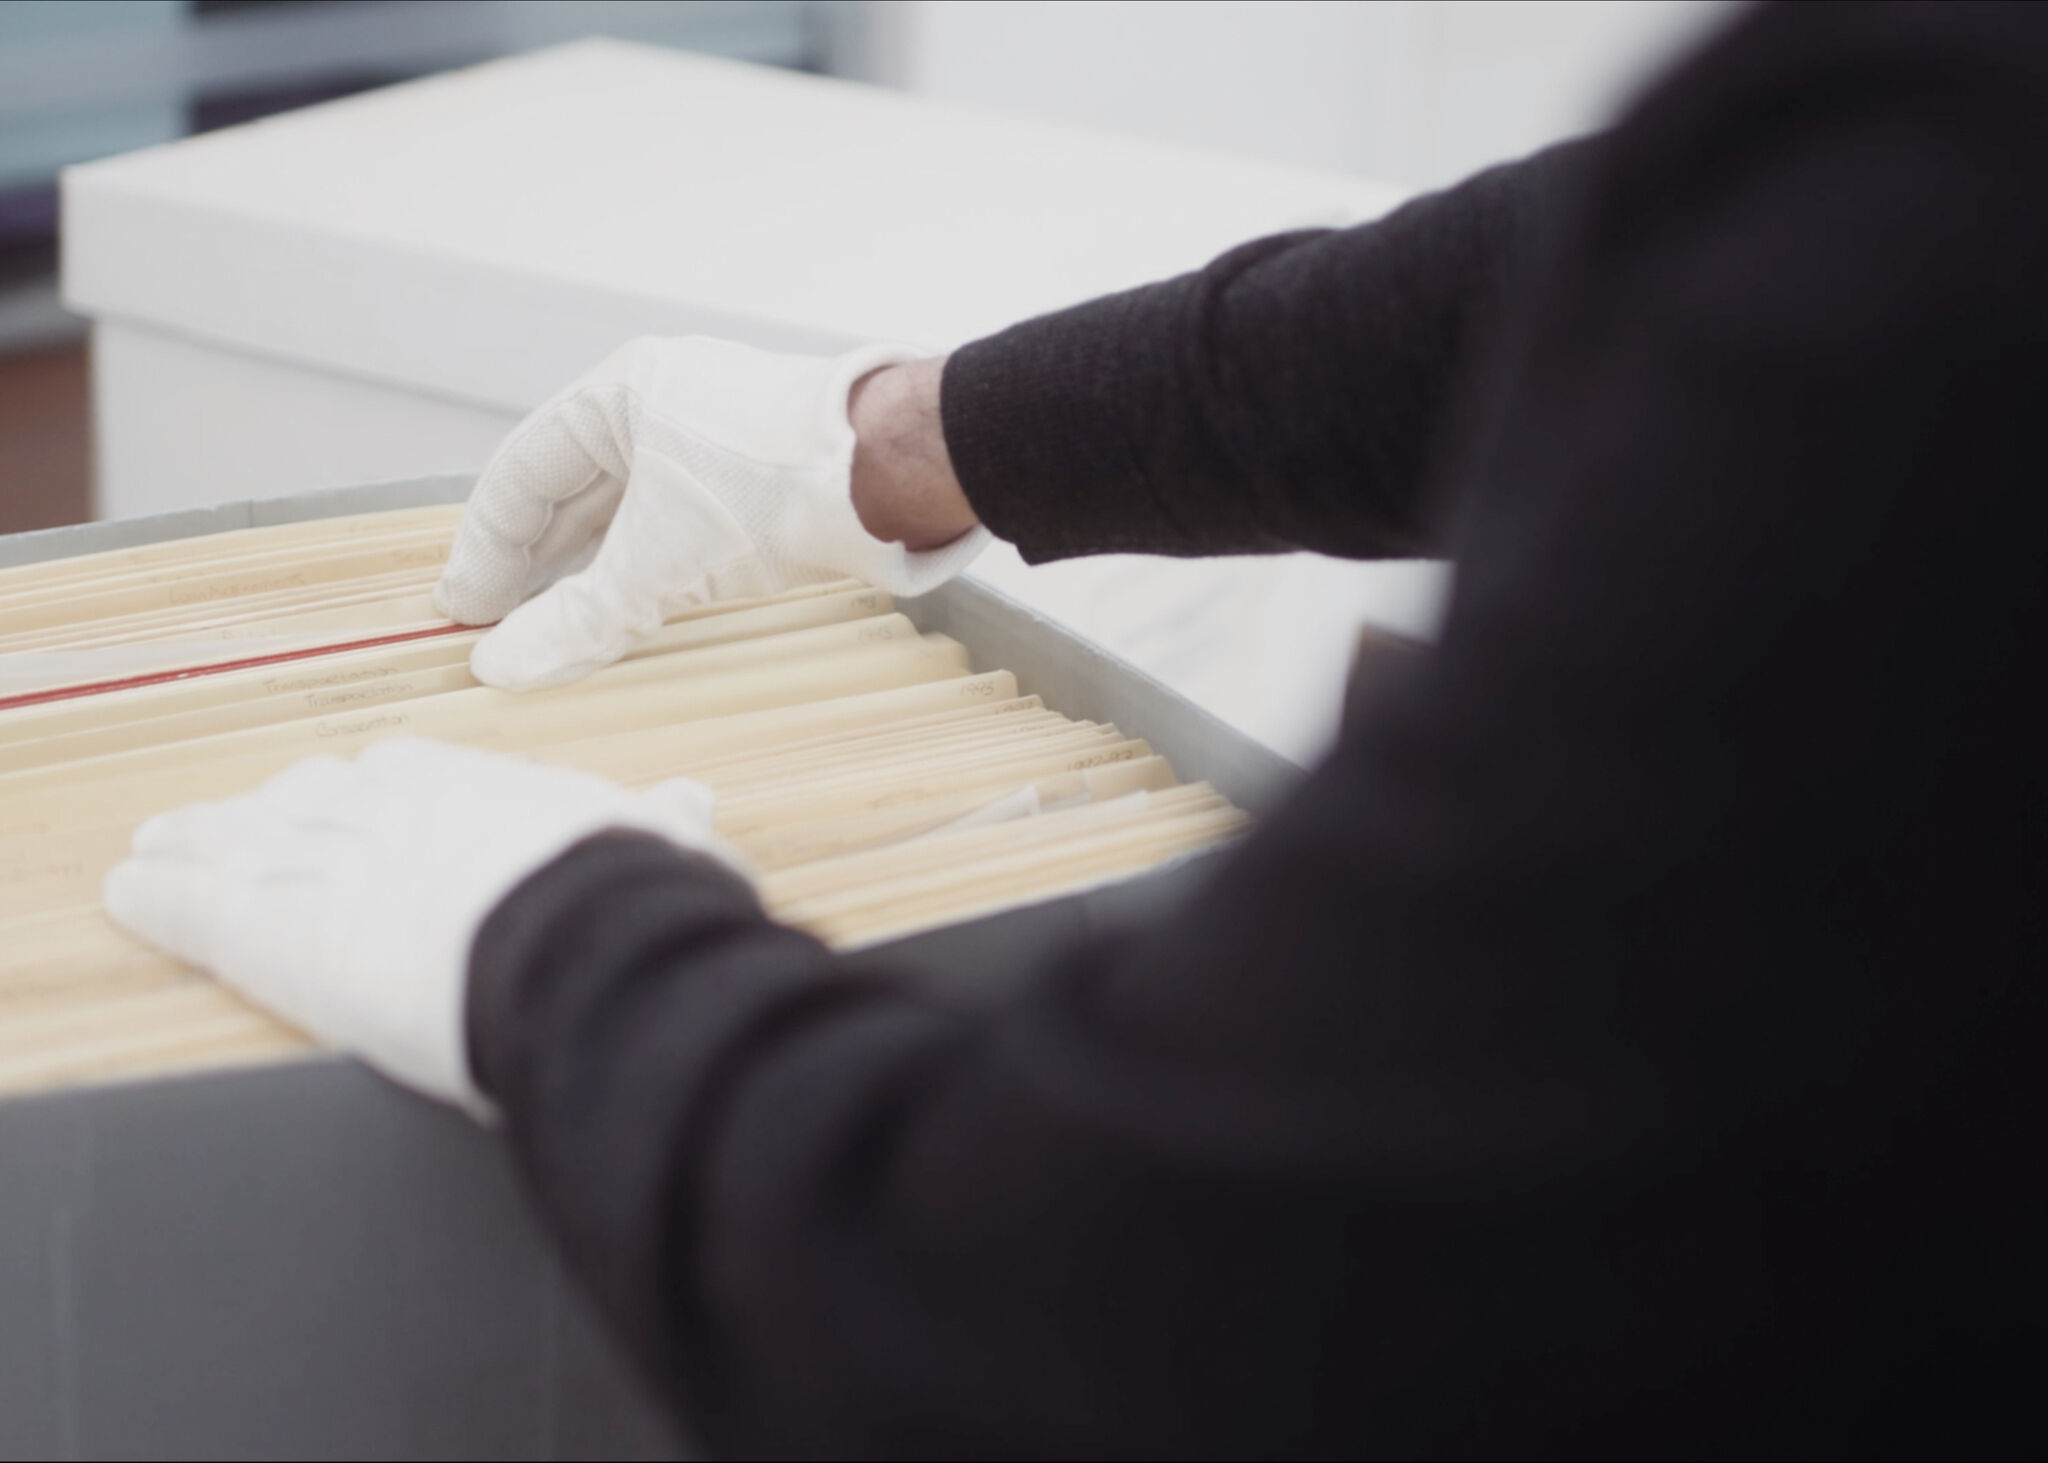 Gloved hands reaching into a box of files.